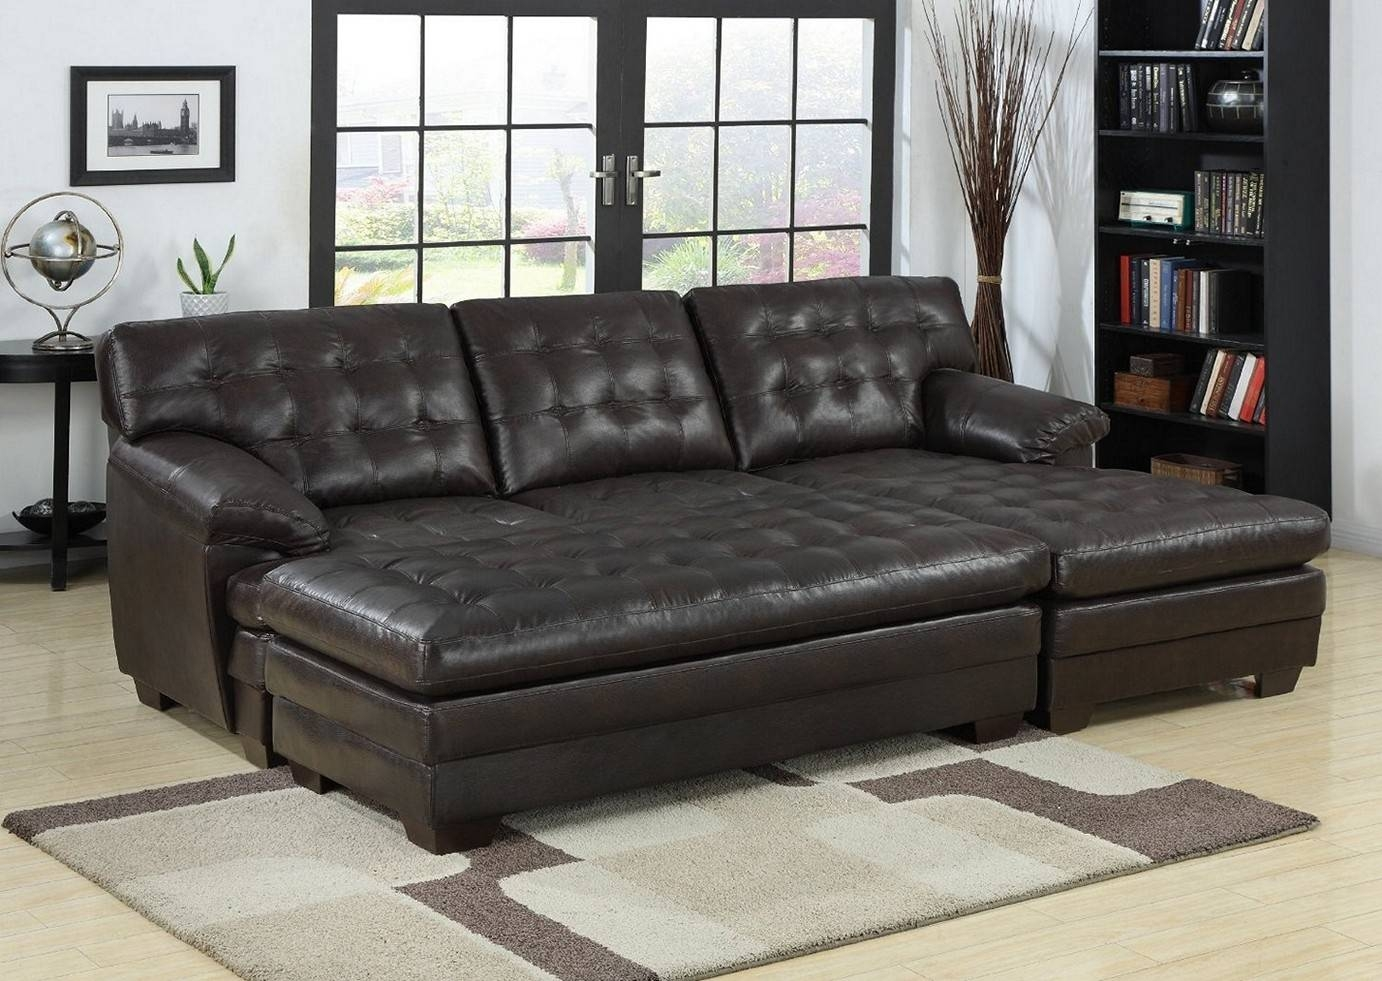 Sofas Center : Chaise Lounge Sofa With Storage Costco Beds World for Sofas With Chaise Longue (Image 27 of 30)